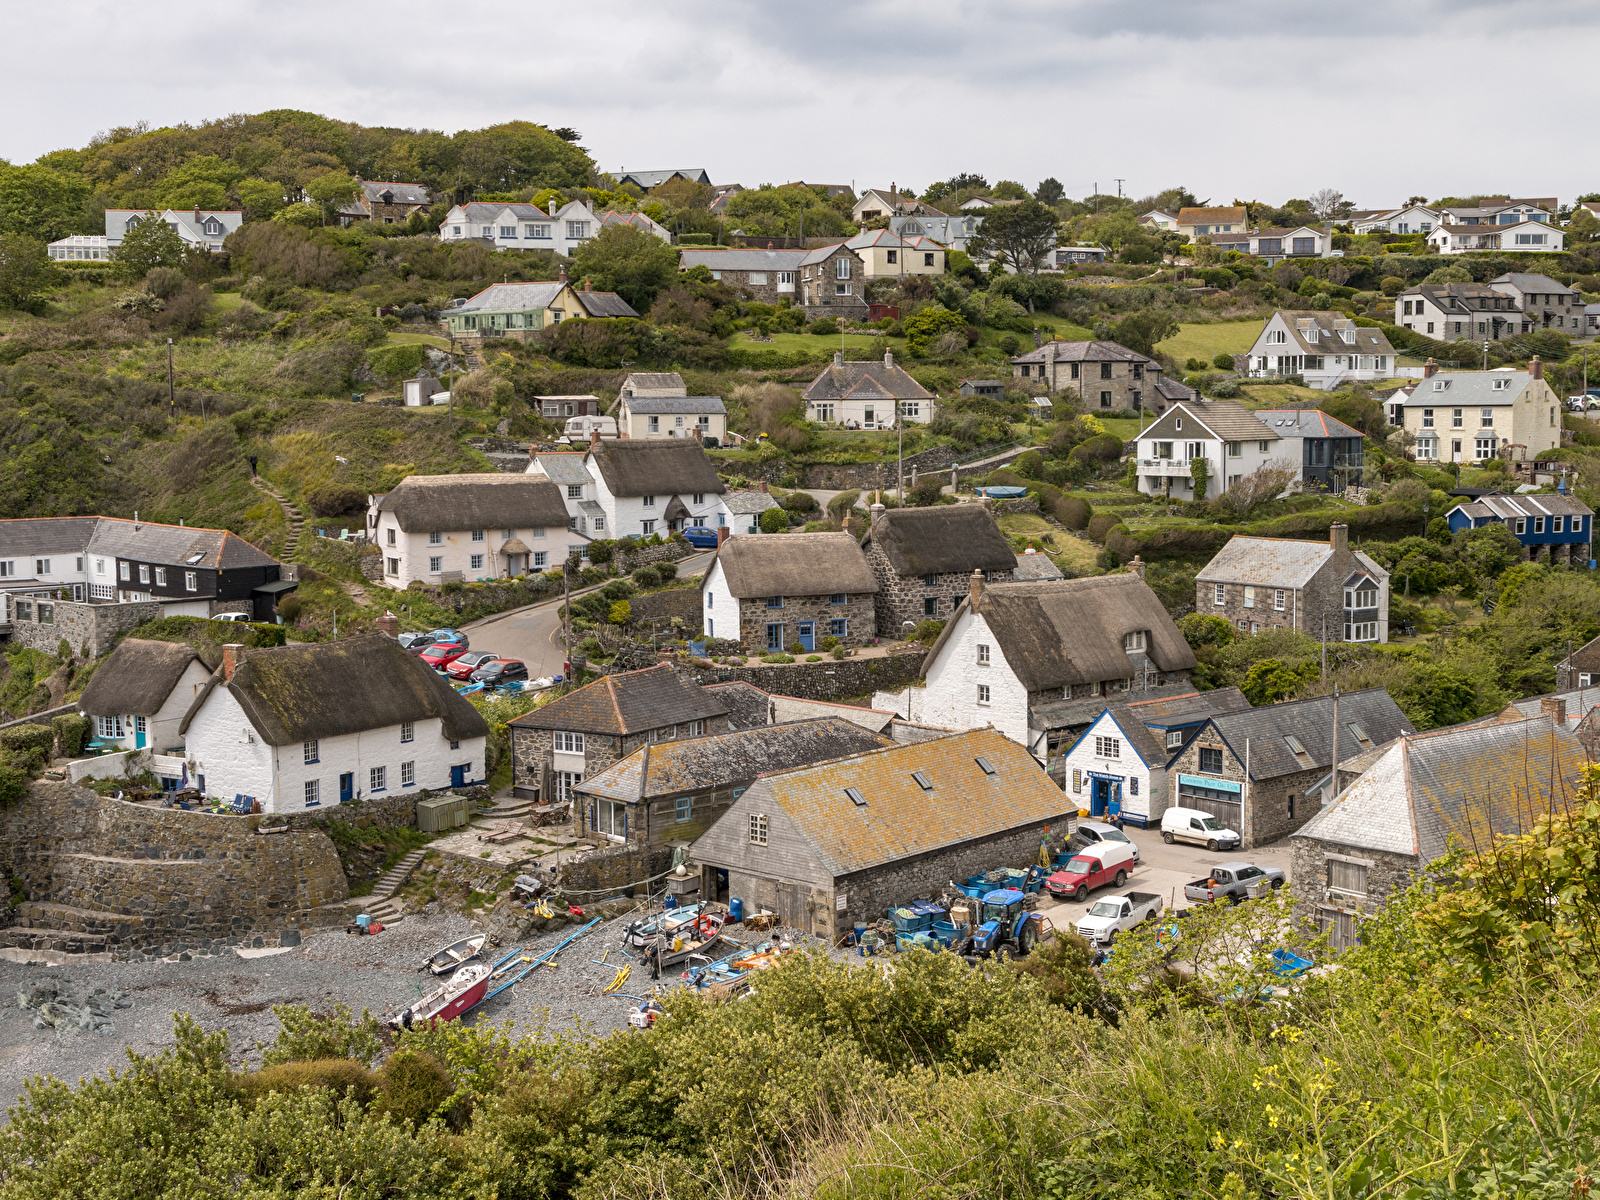 1600x1200、イギリス、住宅、Cadgwith Cove、村、屋根、建物、都市、